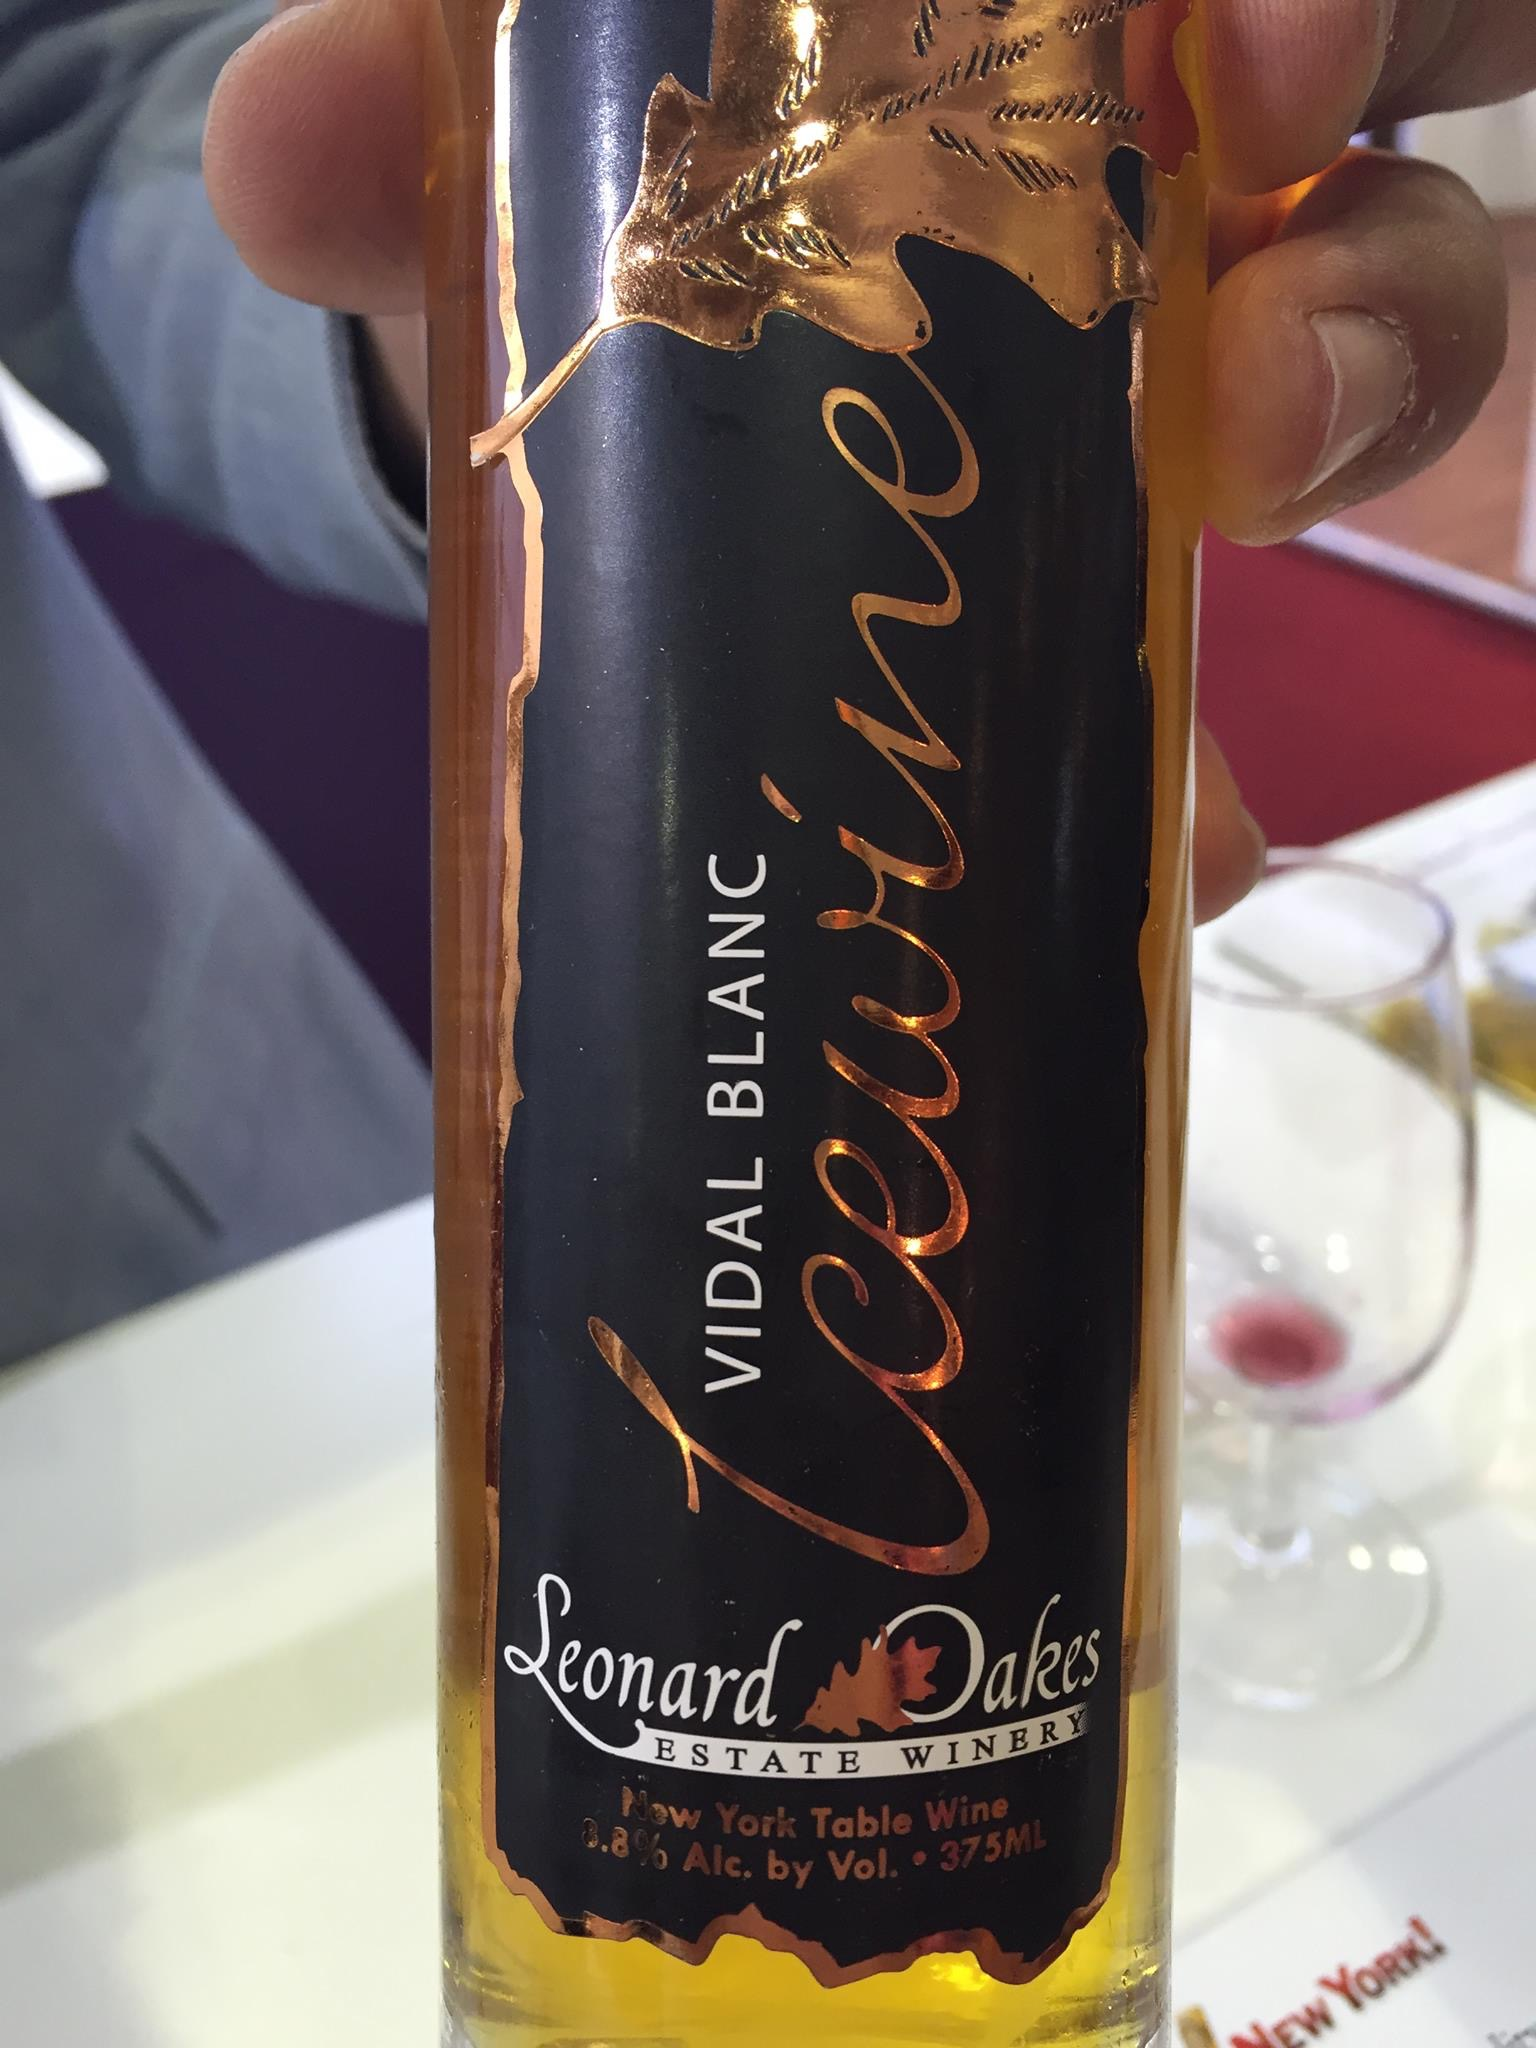 Leonard Oakes Estate Wines – Vidal Blanc Icewine 2011 – New York Table Wine